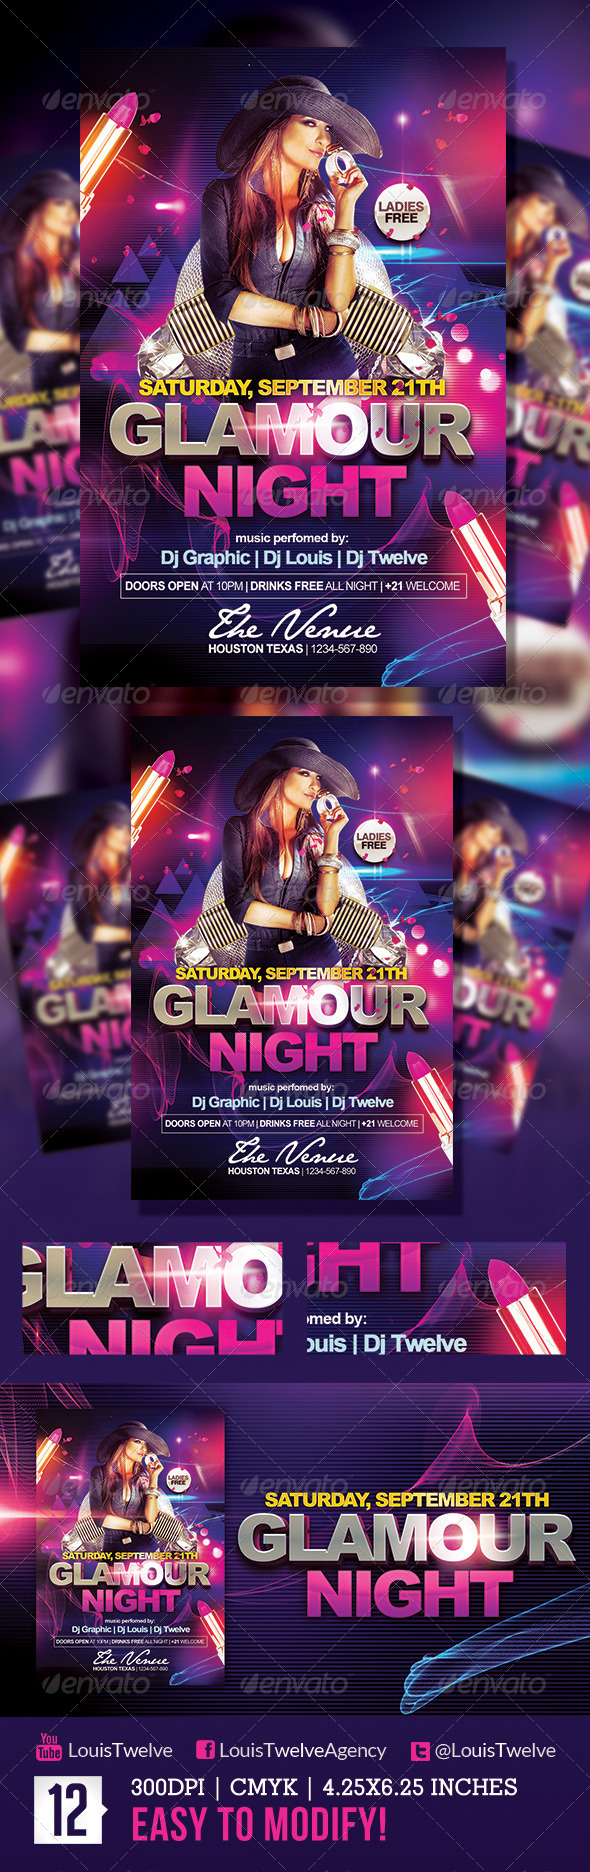 Glamour Night | Flyer Template - Clubs & Parties Events